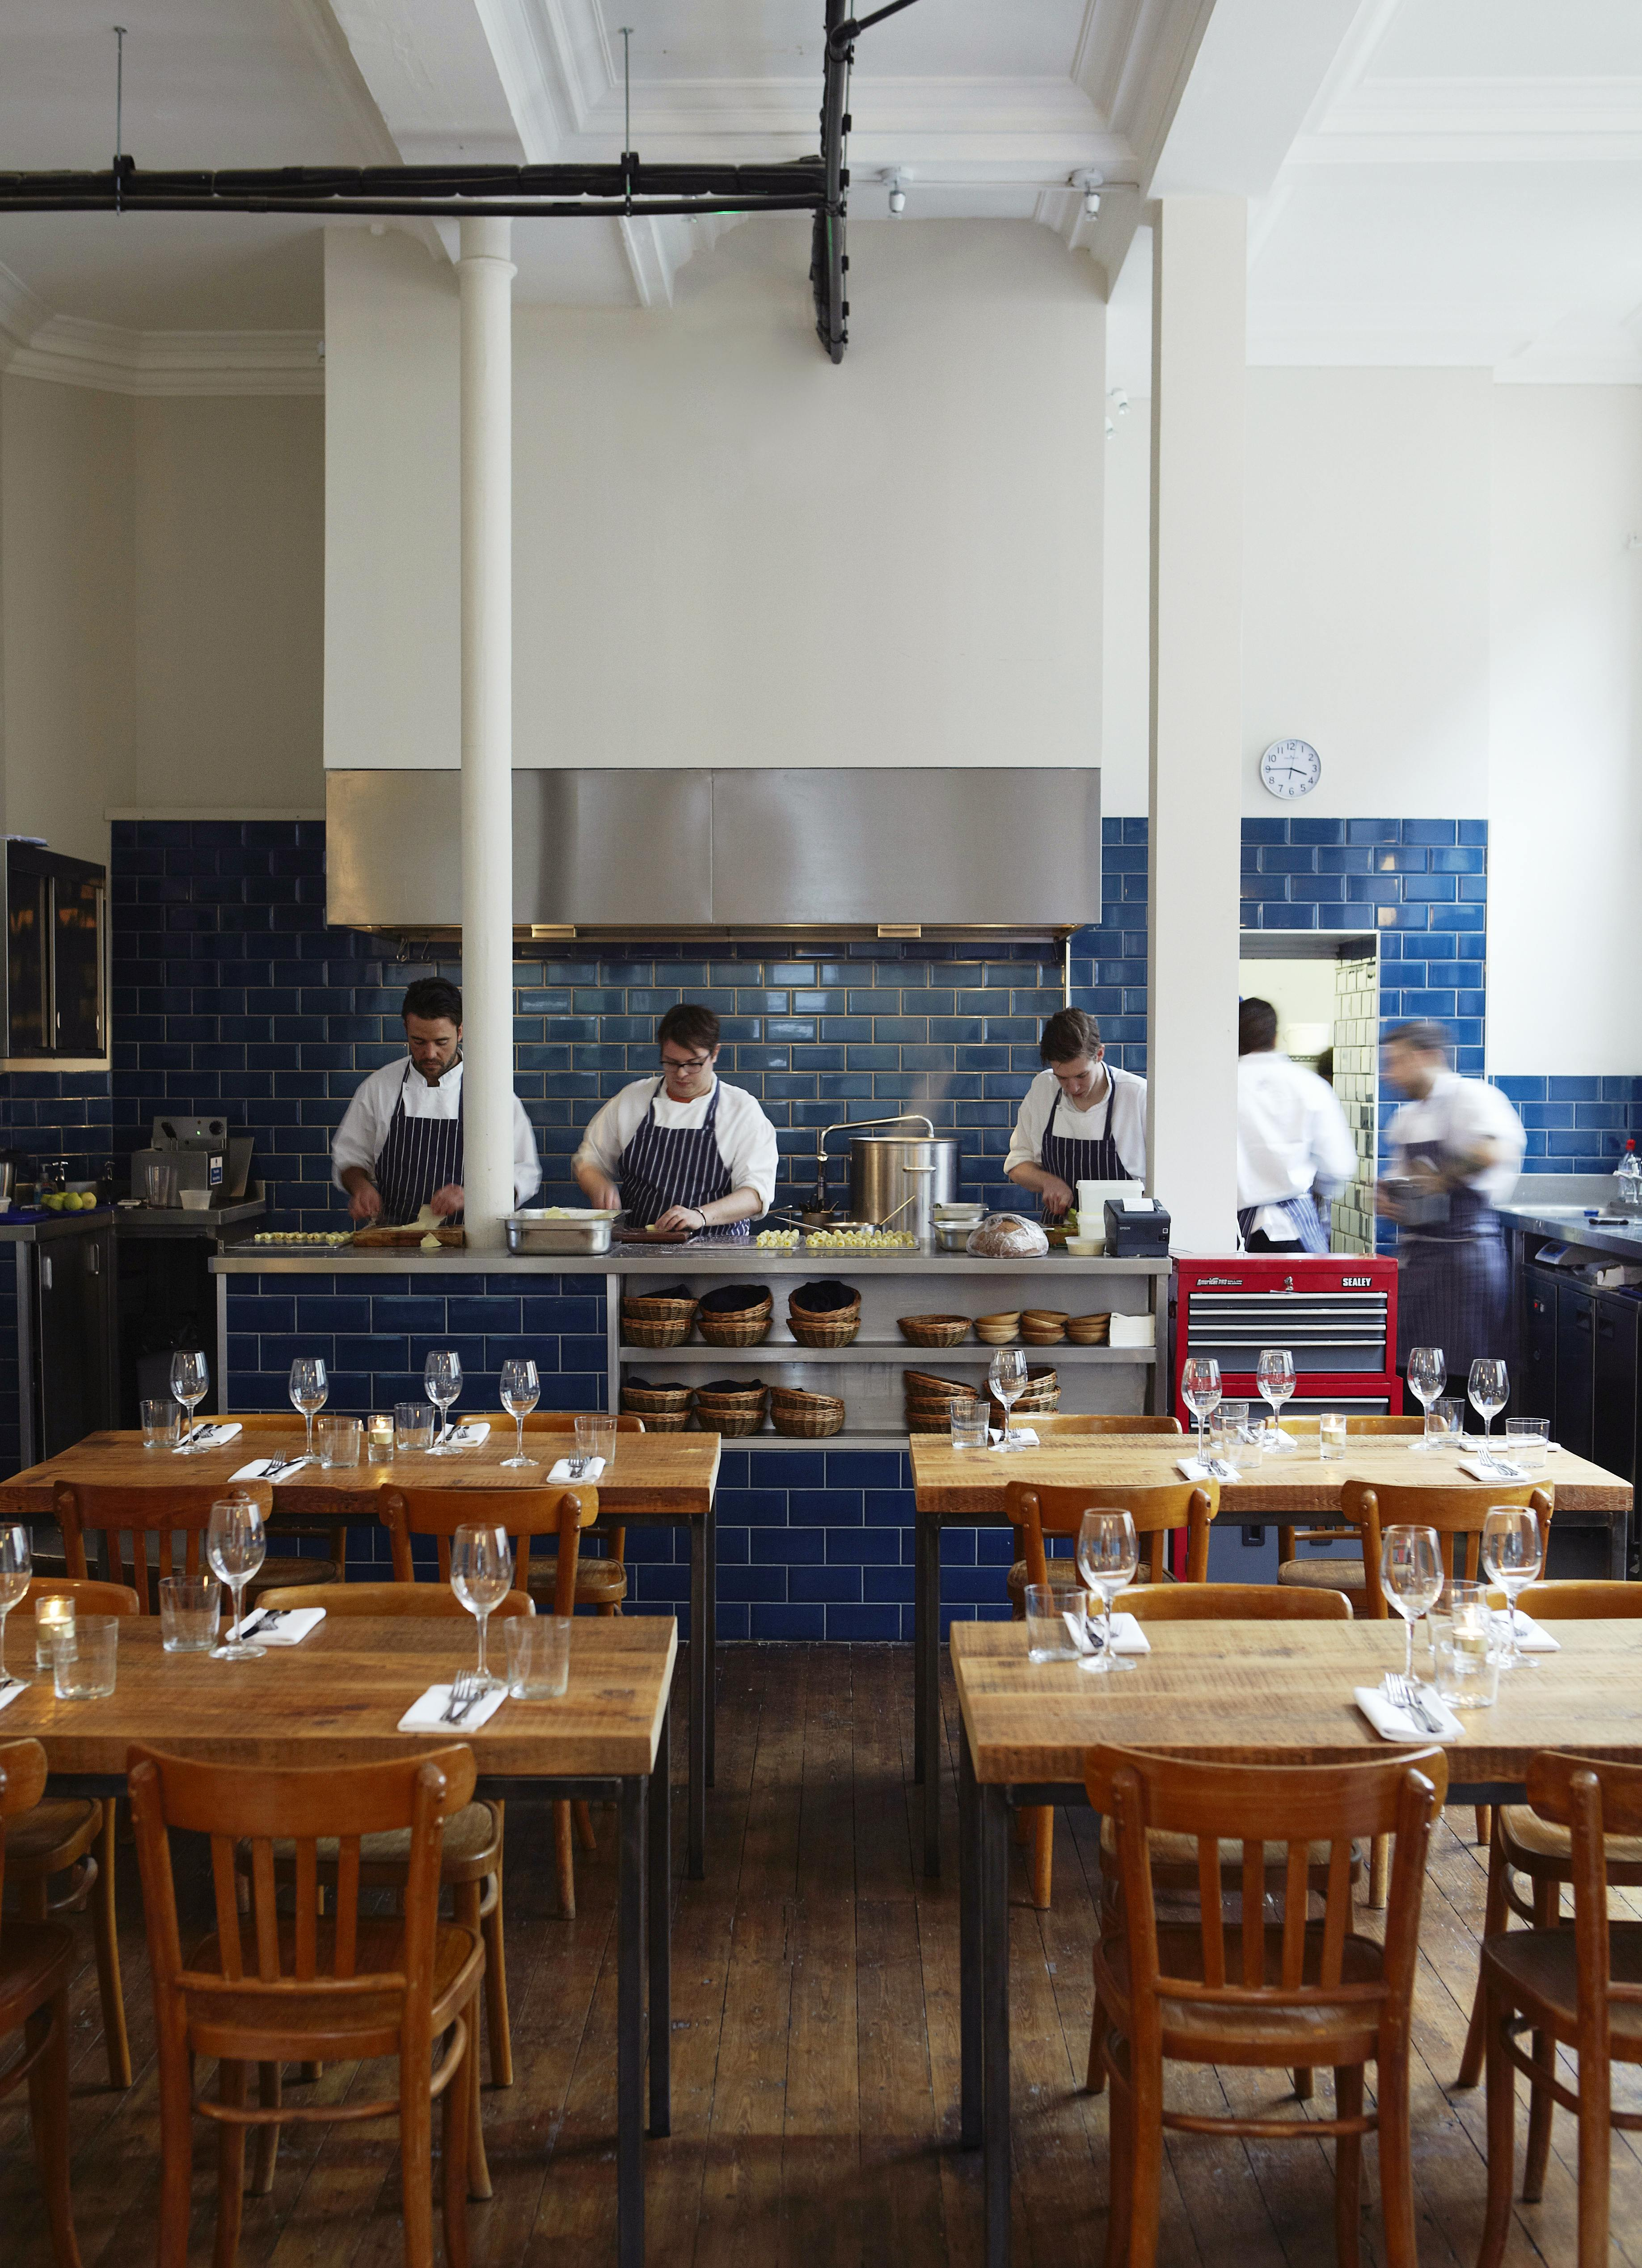 The open kitchen at The Clove Club in London, with chefs on a metal pass framed by blue tiles.